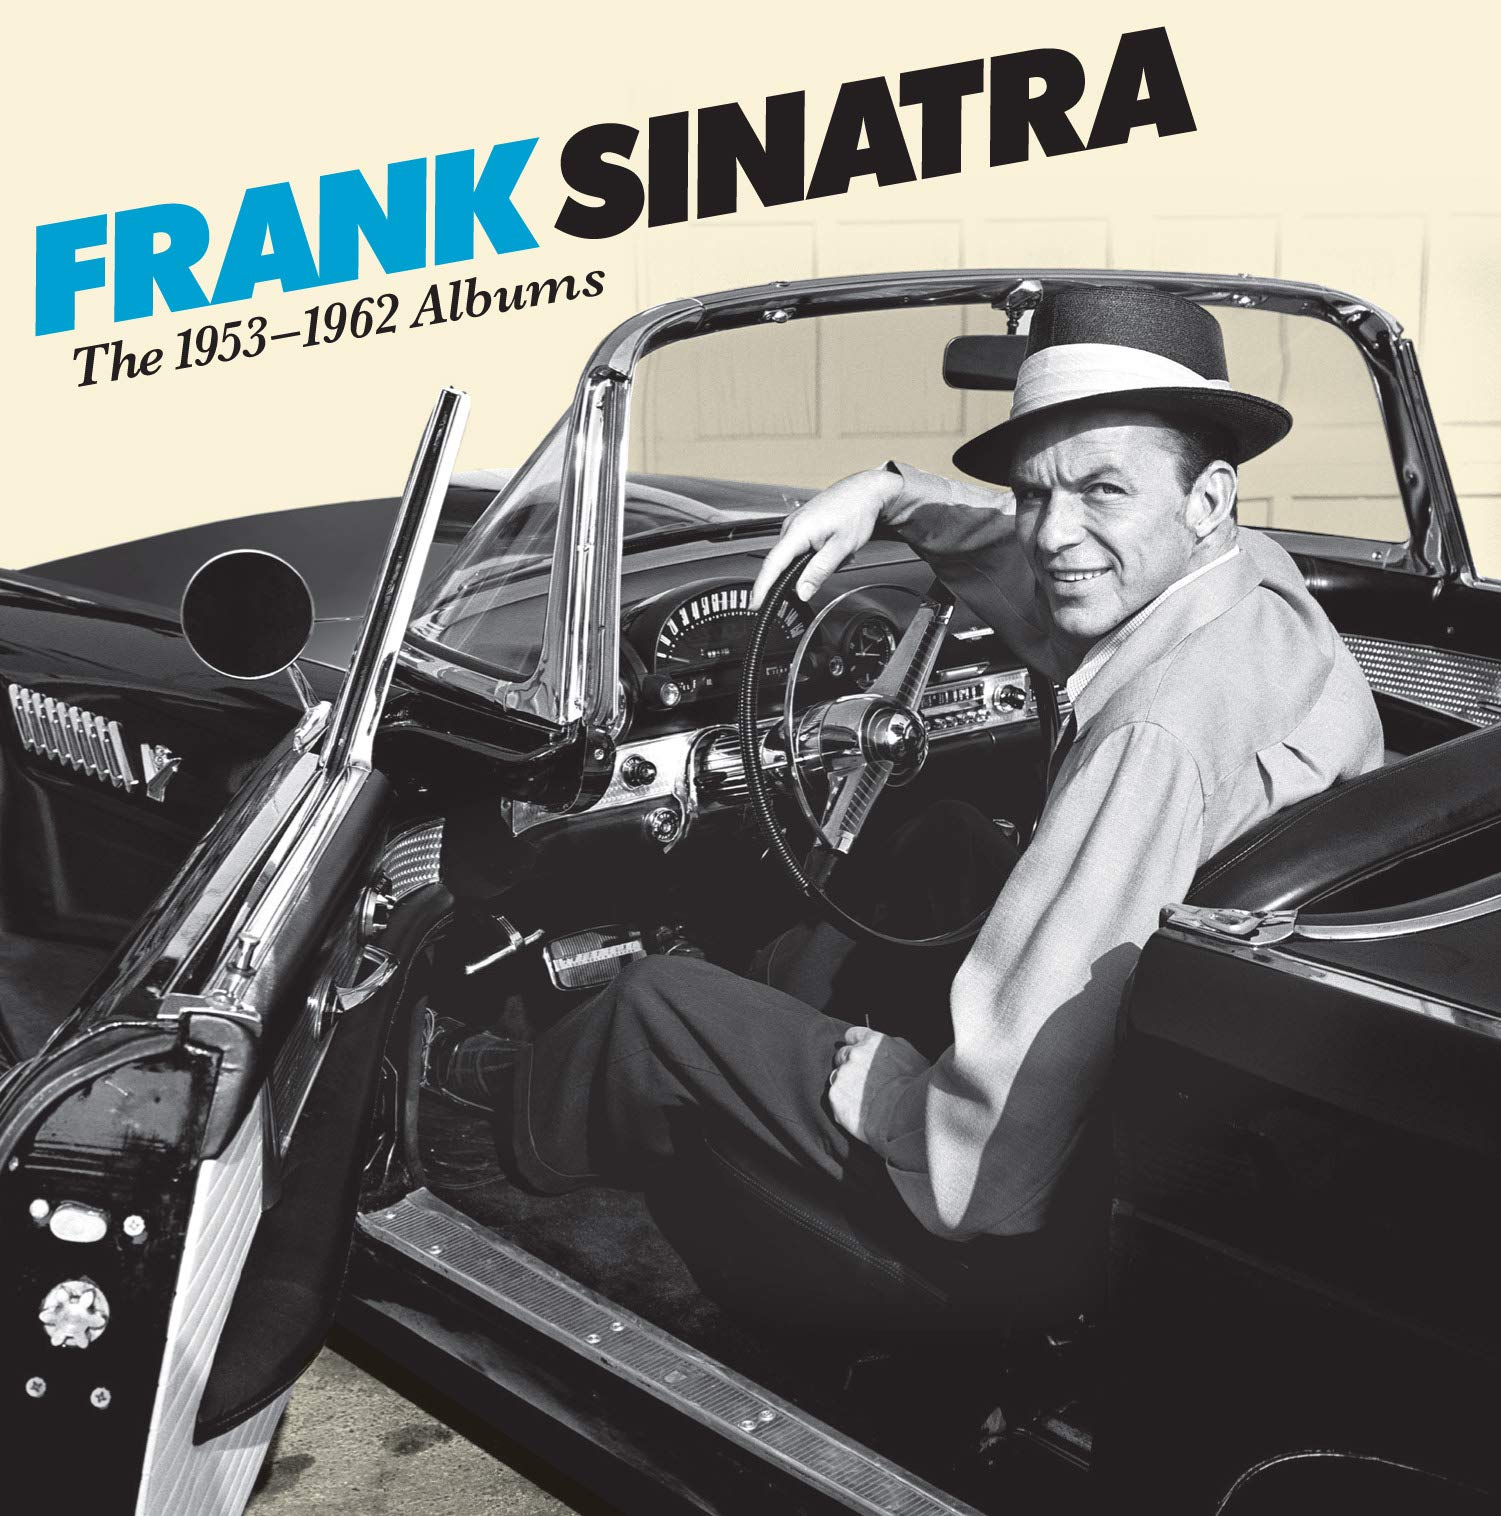 CD : Frank Sinatra - 1953-1962 Albums (Bonus Tracks, Remastered, With Book, Boxed Set, Spain - Import)